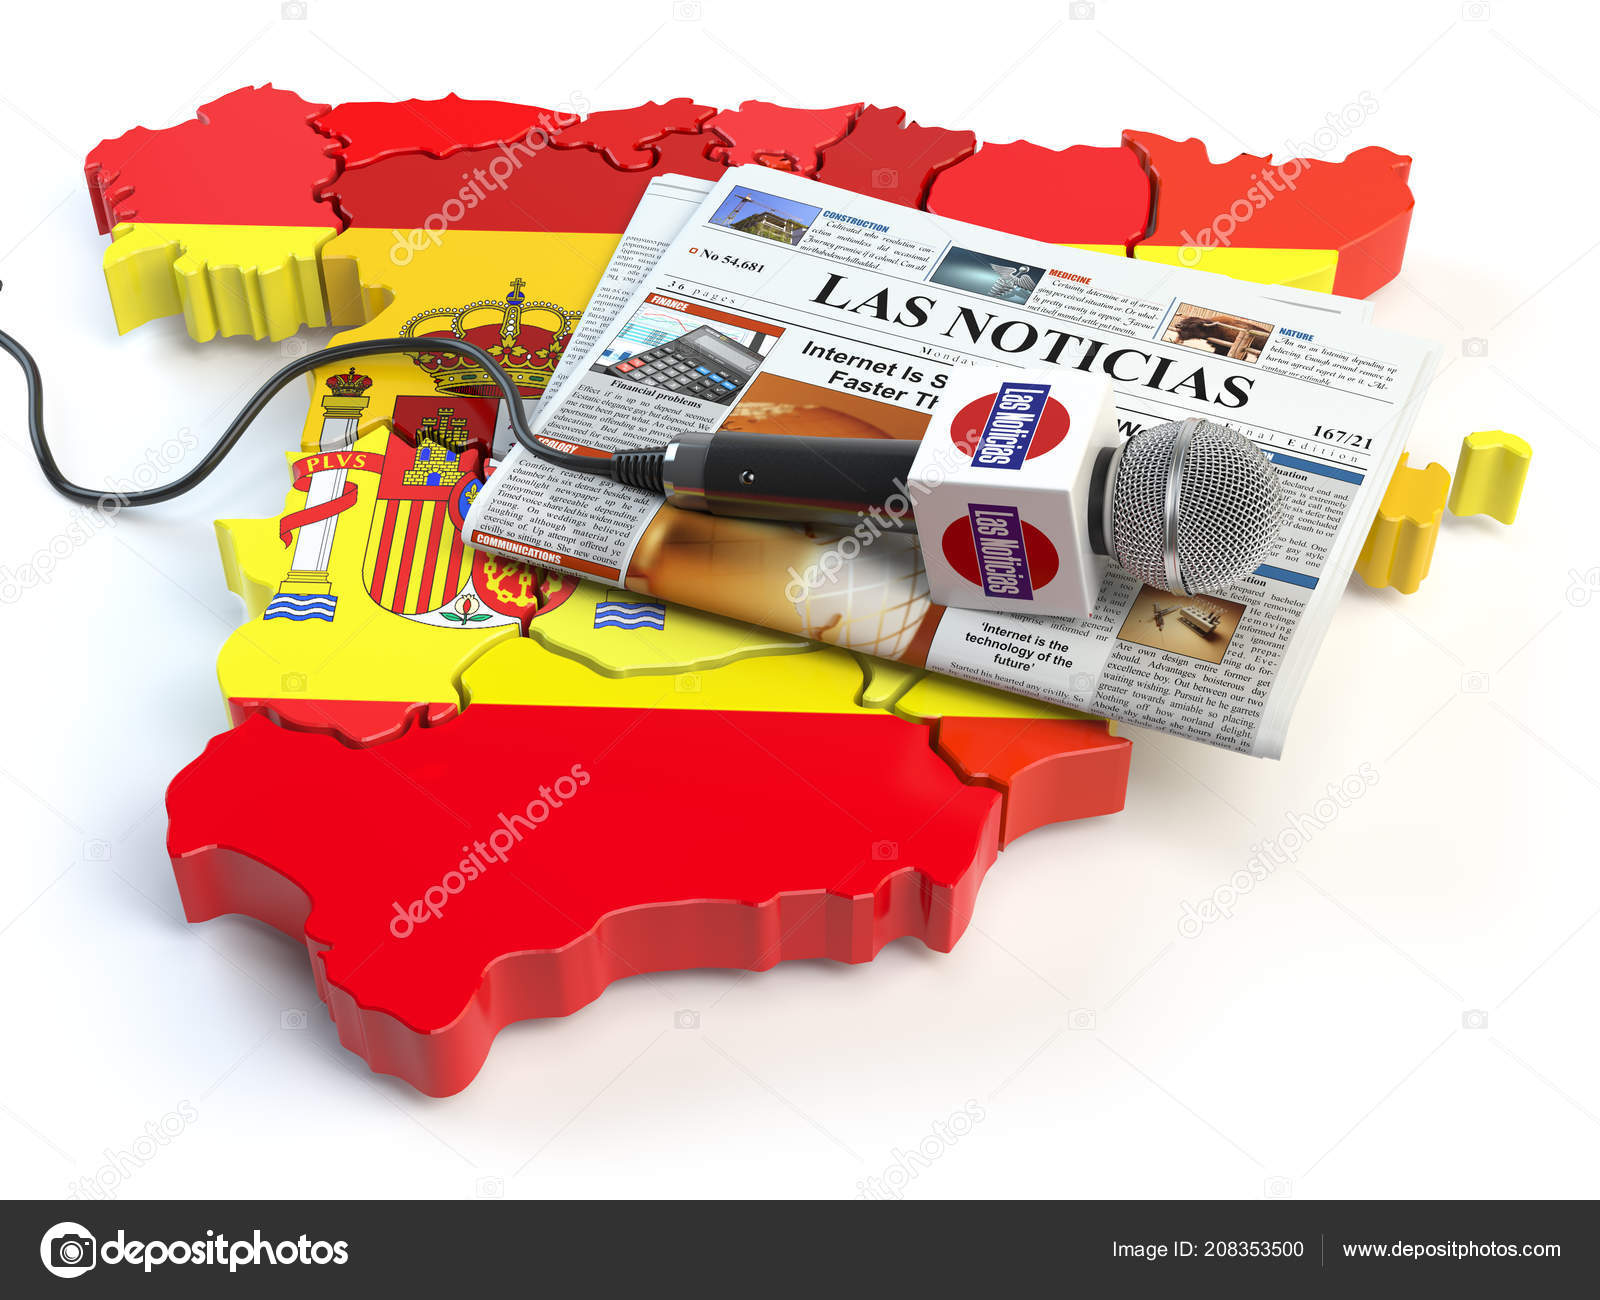 Publish your post in a newspaper in Spain